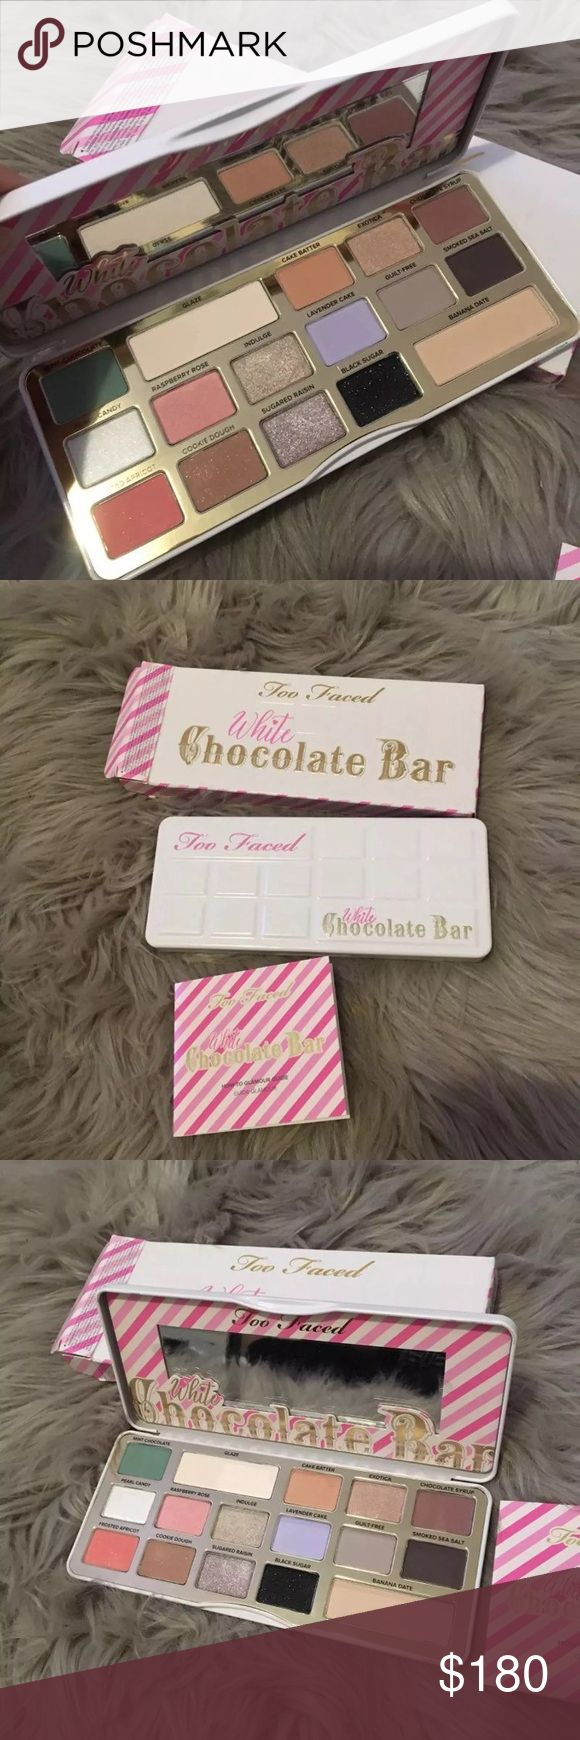 Too faced white chocolate bar palette Unreleased. New with box 100% authentic! This palette smells amazing! Price is high for a reason. Don't be annoying pls, thnx.  Too Faced Makeup Eyeshadow